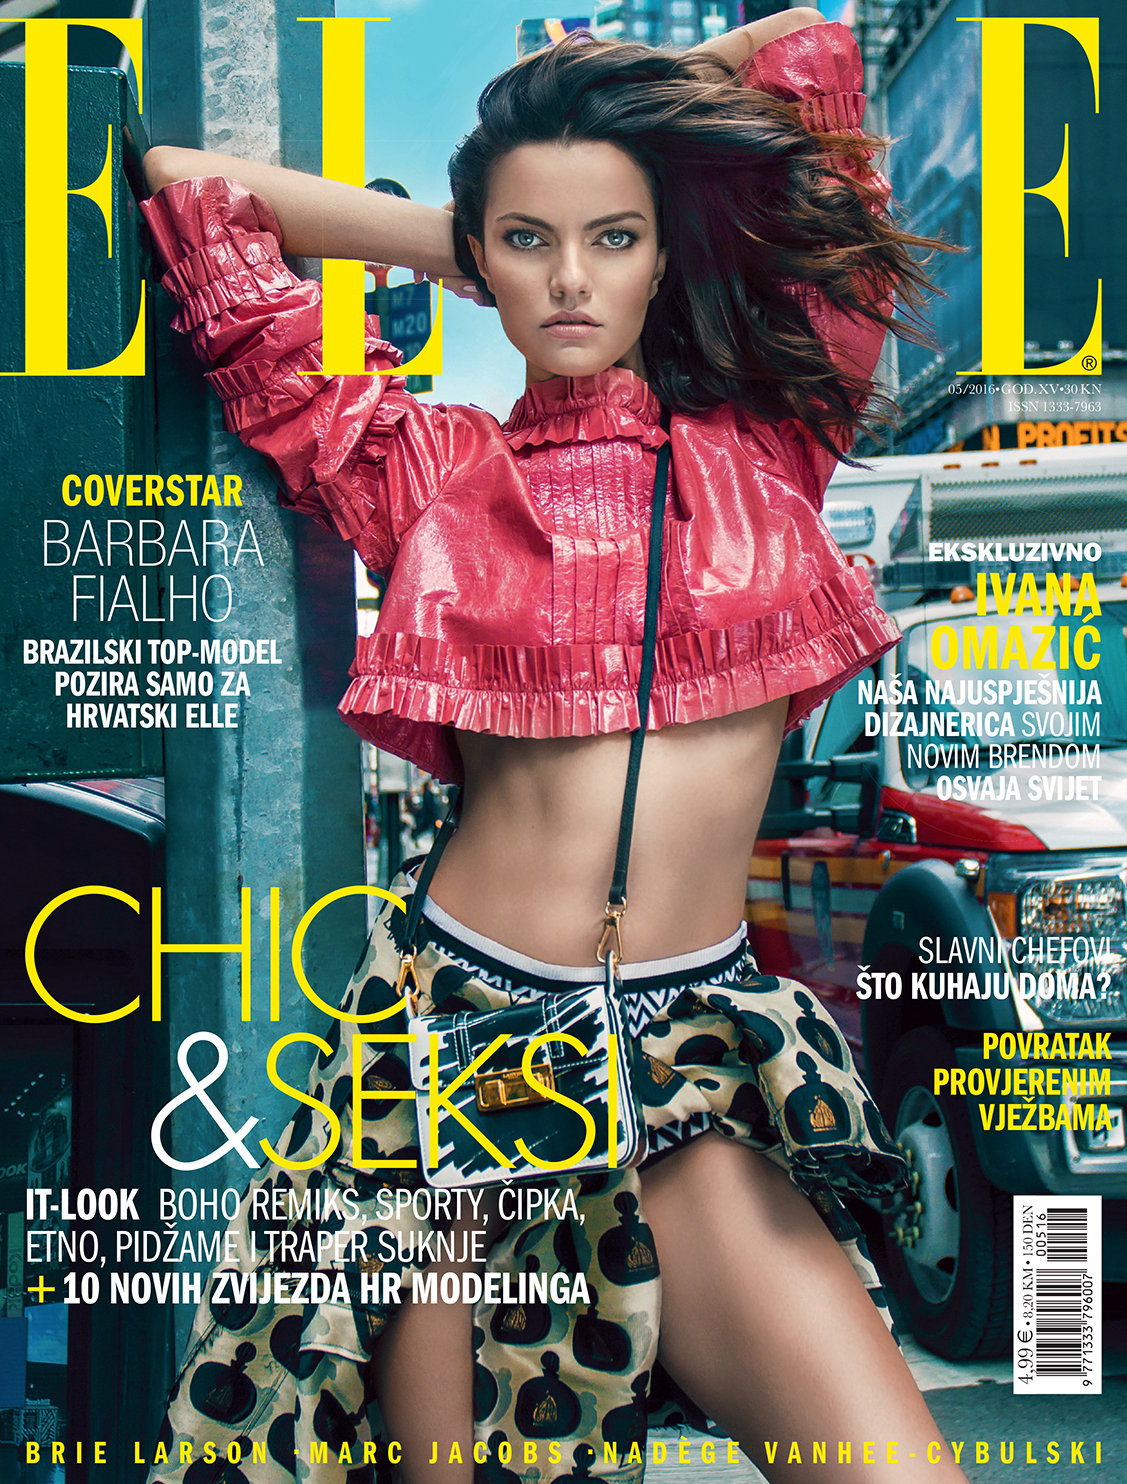 ELLE MAY 16 COVER STORY